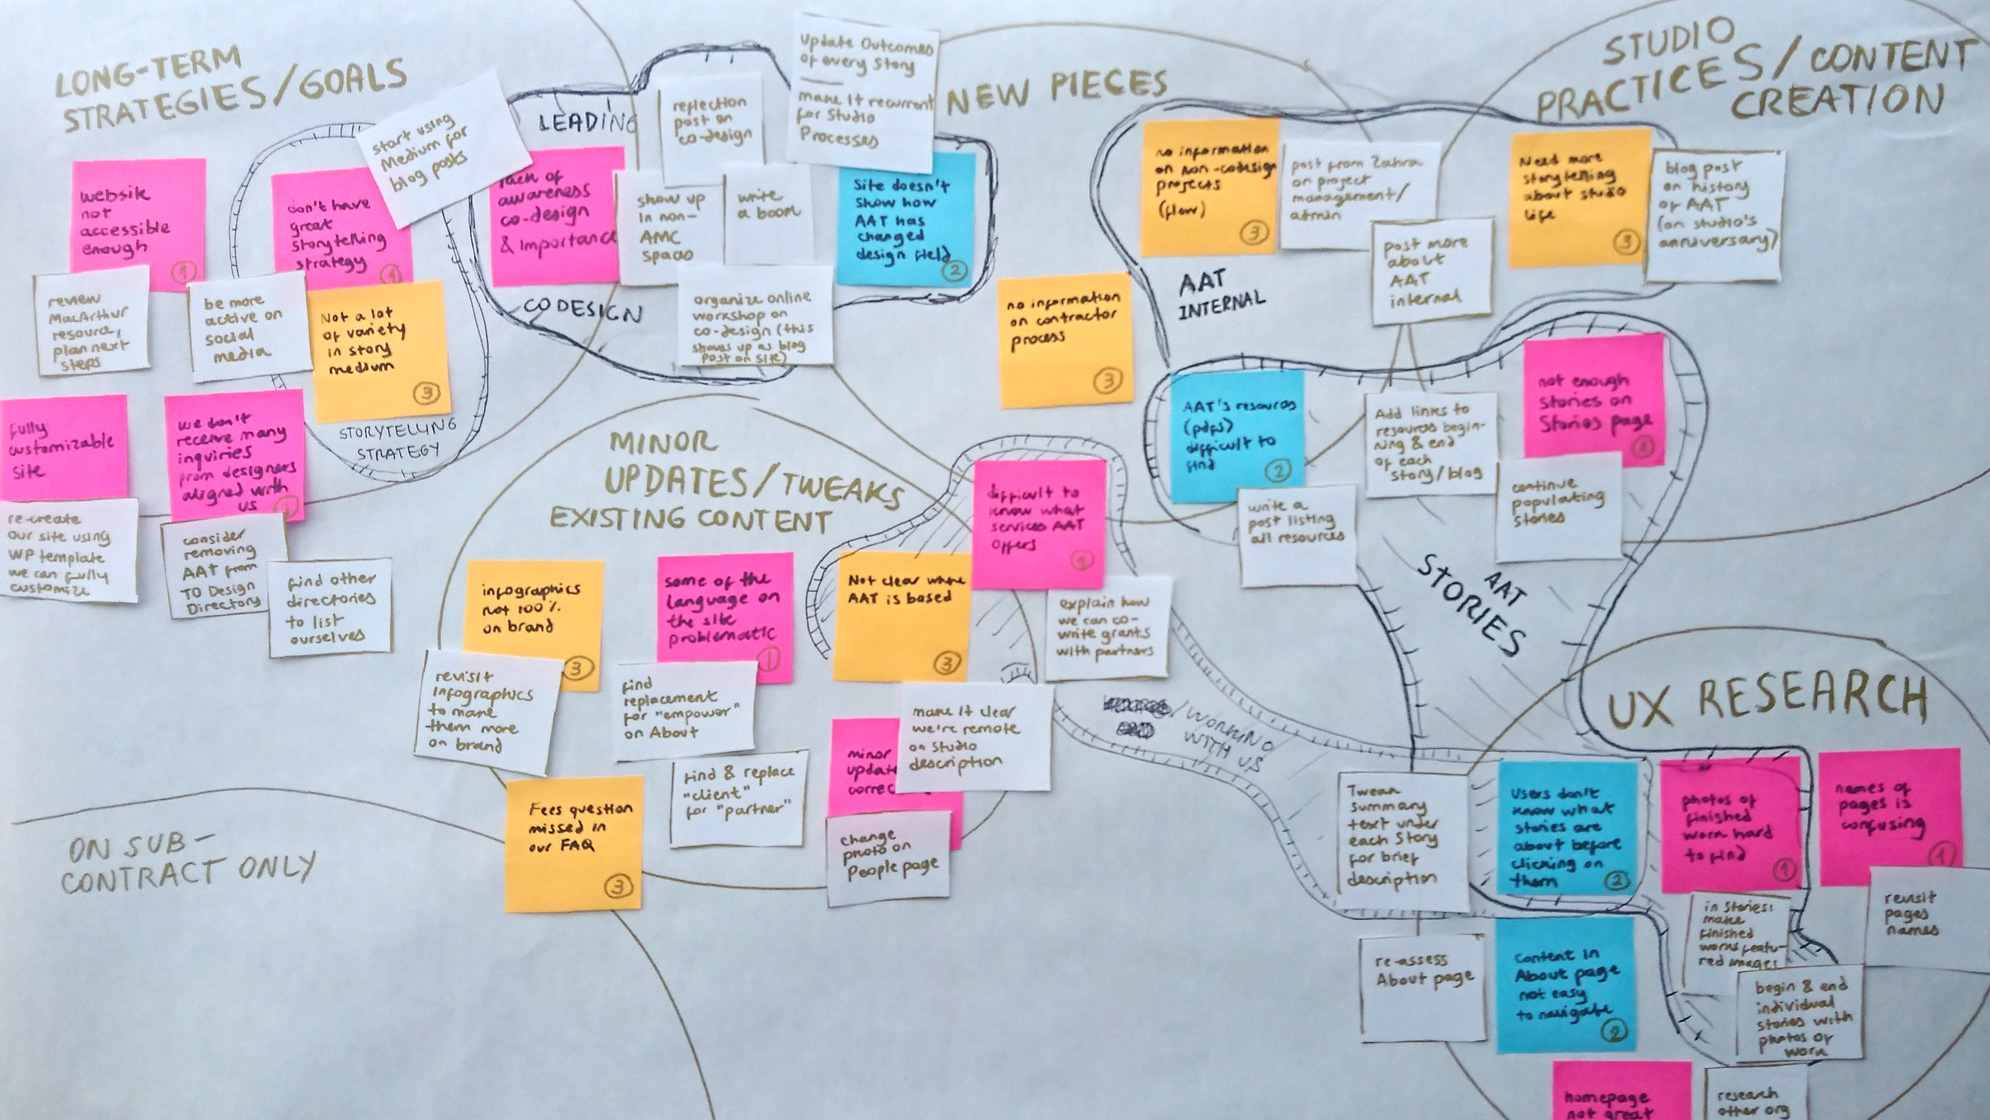 Affinity map with pink, orange and blue stickies. The map shows clusters of stickies arranged inside hand-drawn, organic shapes.